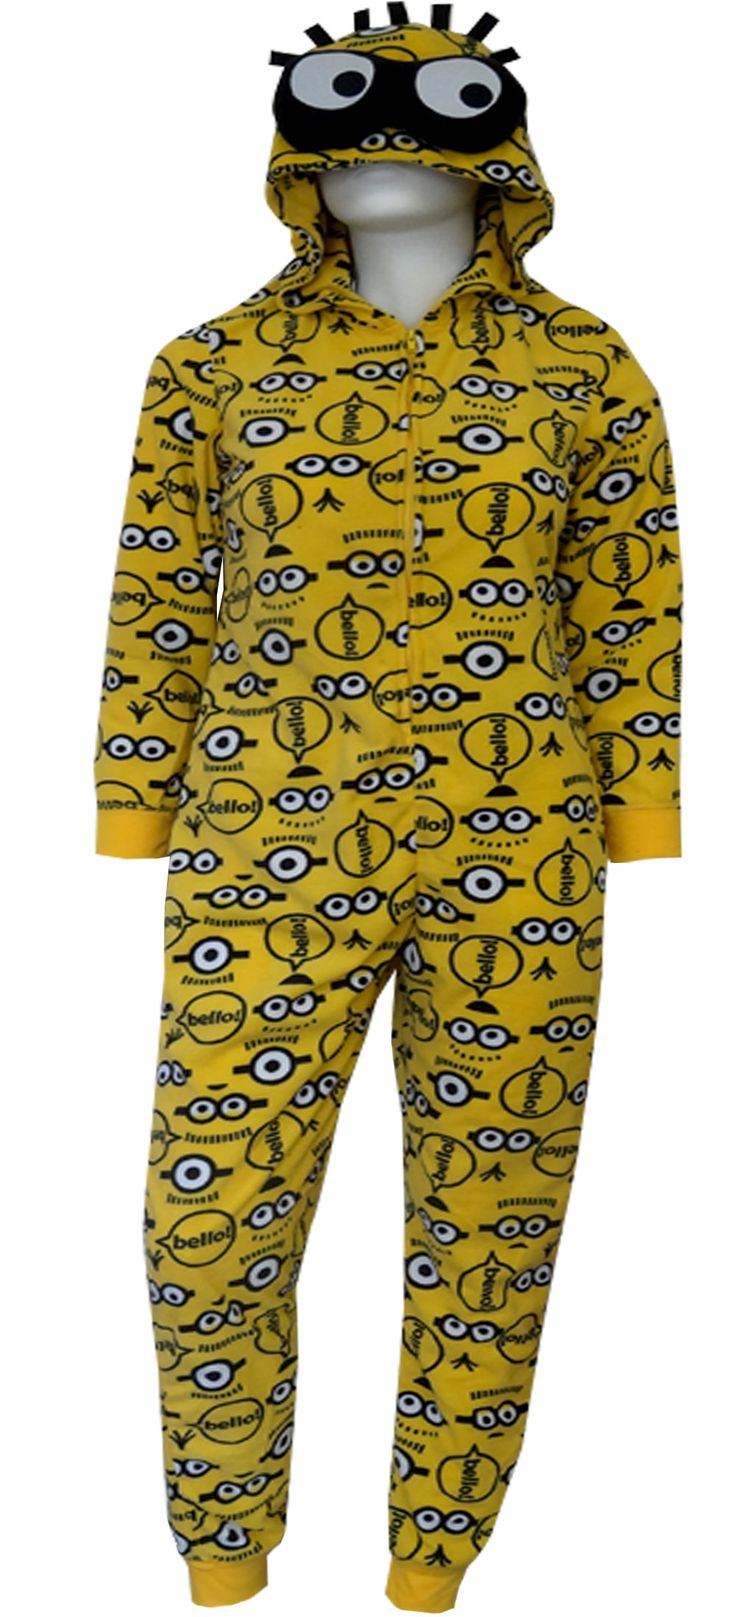 78 best images about onesie on pinterest onesies for Minion clothespins